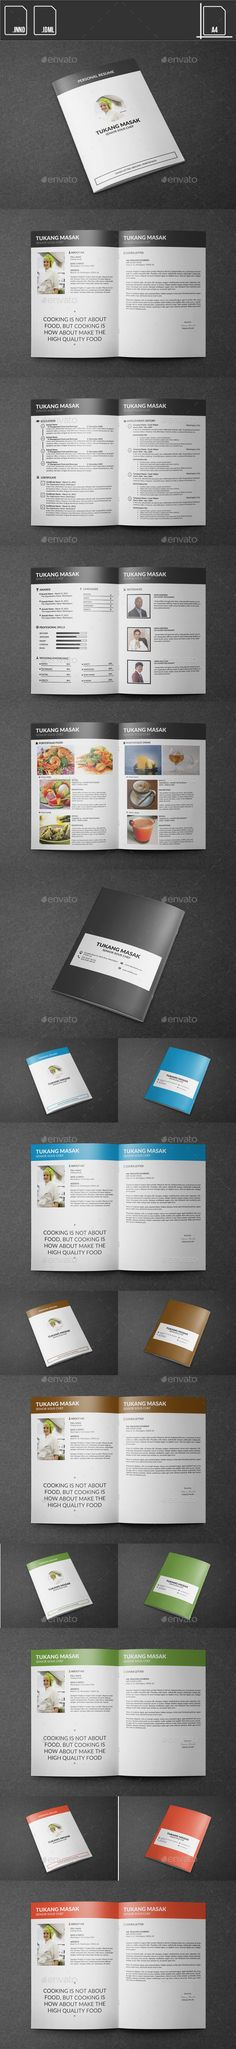 Chef Resume Template Word, InDesign and PSD Format Chef Resume - chef resume